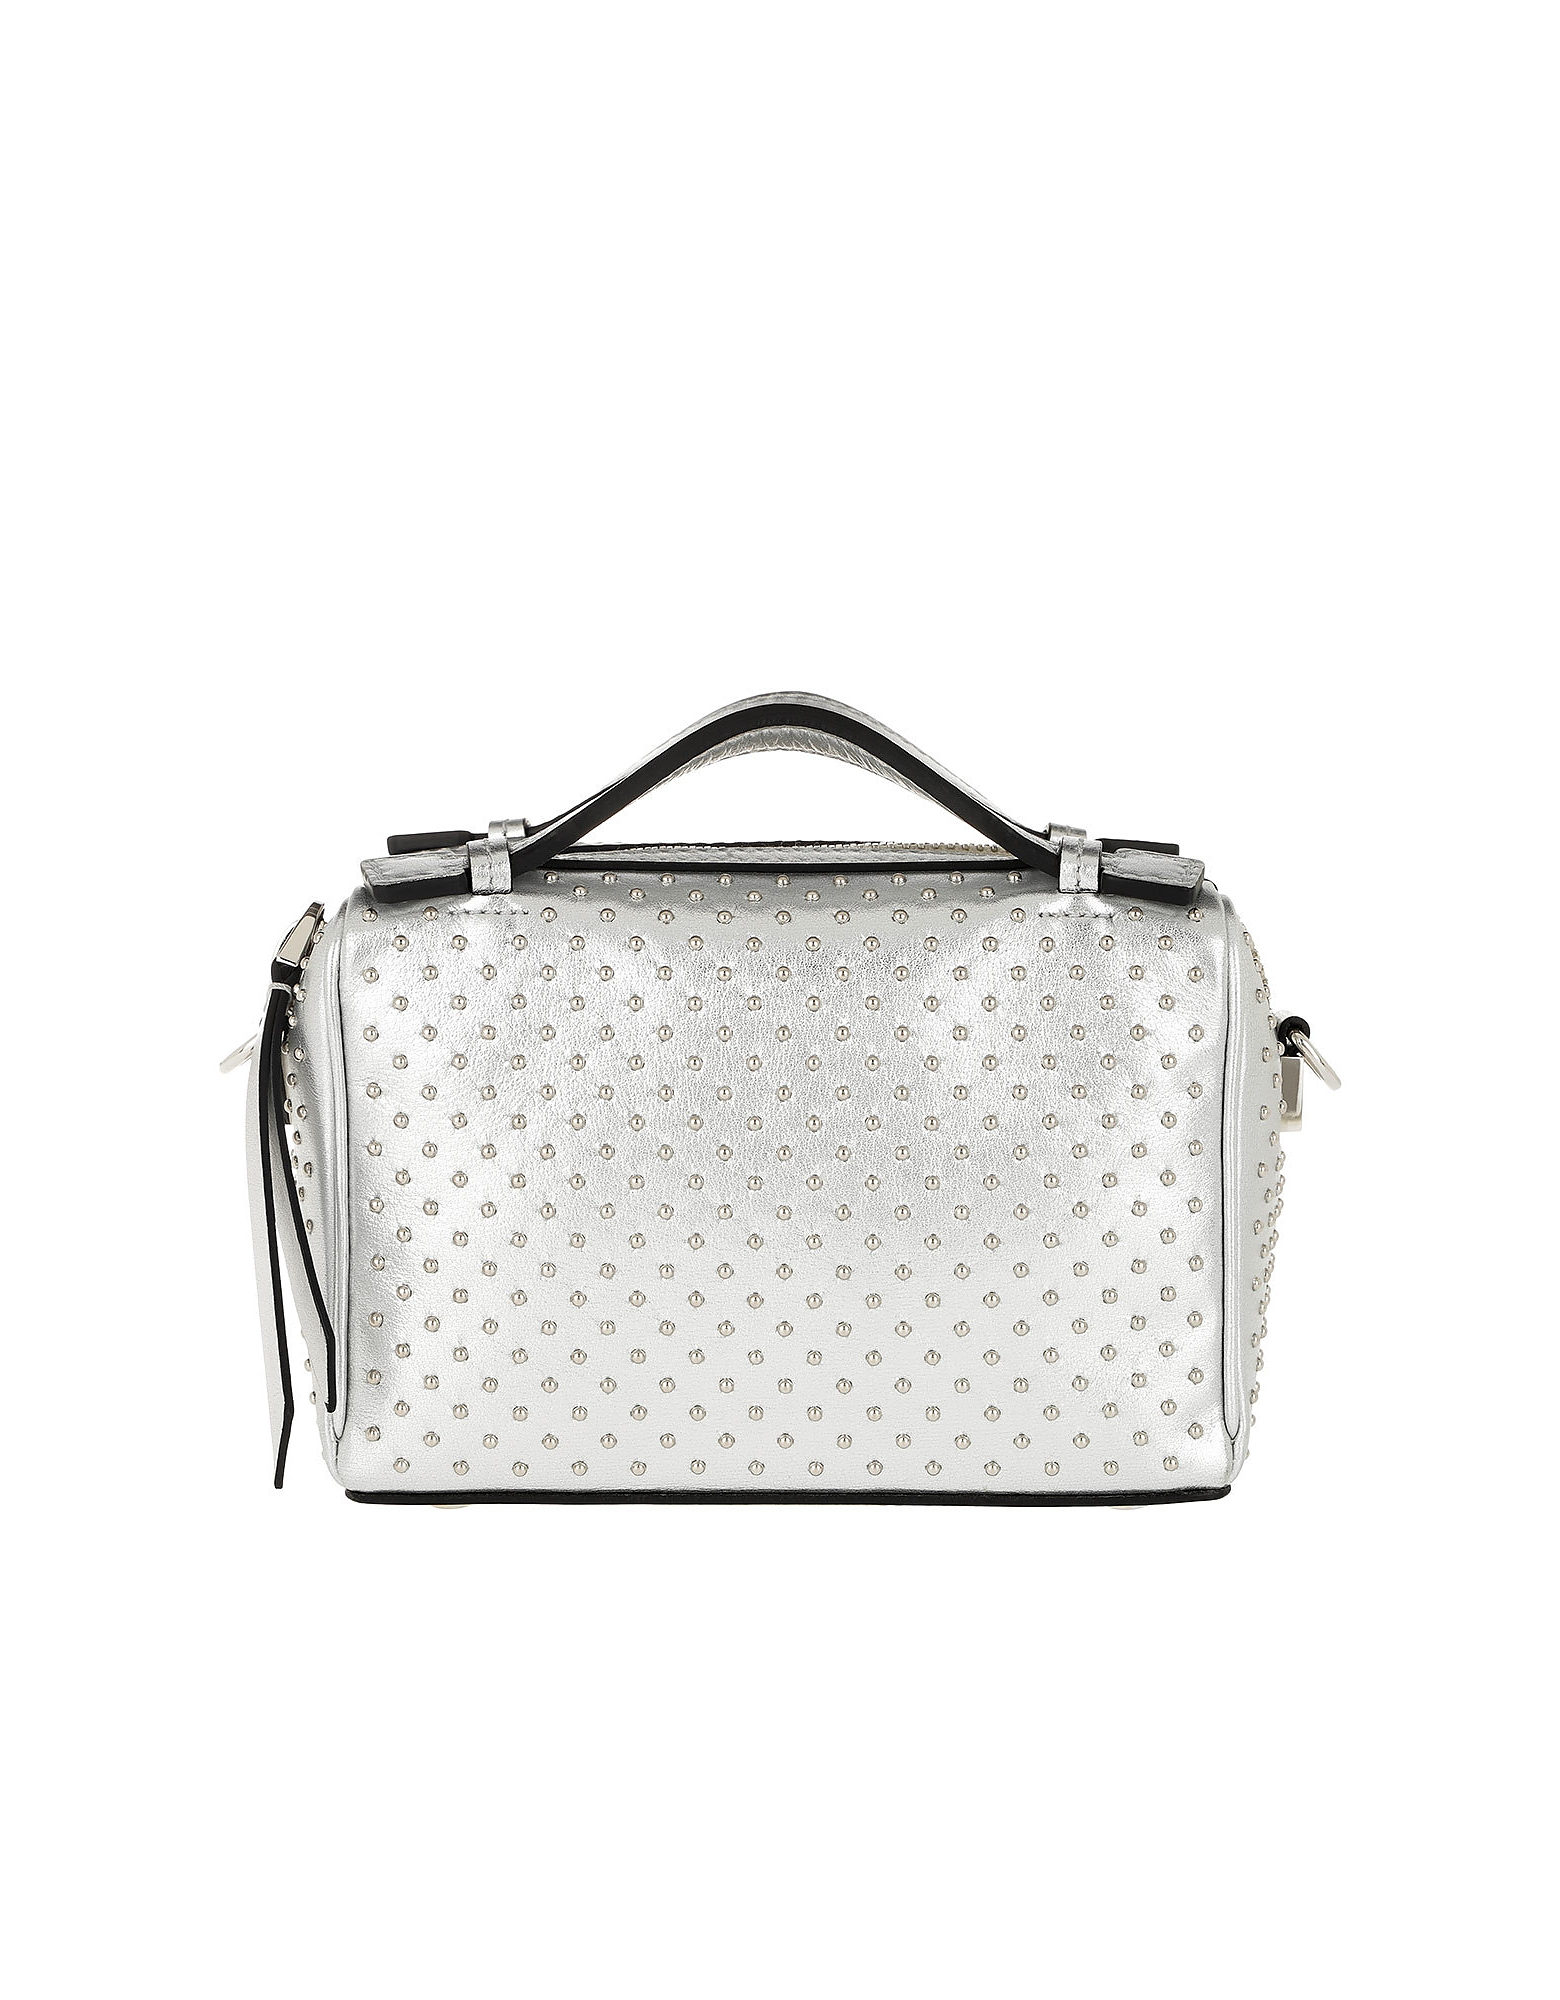 Don Bauletto Micro Pave Bag Leather Silver